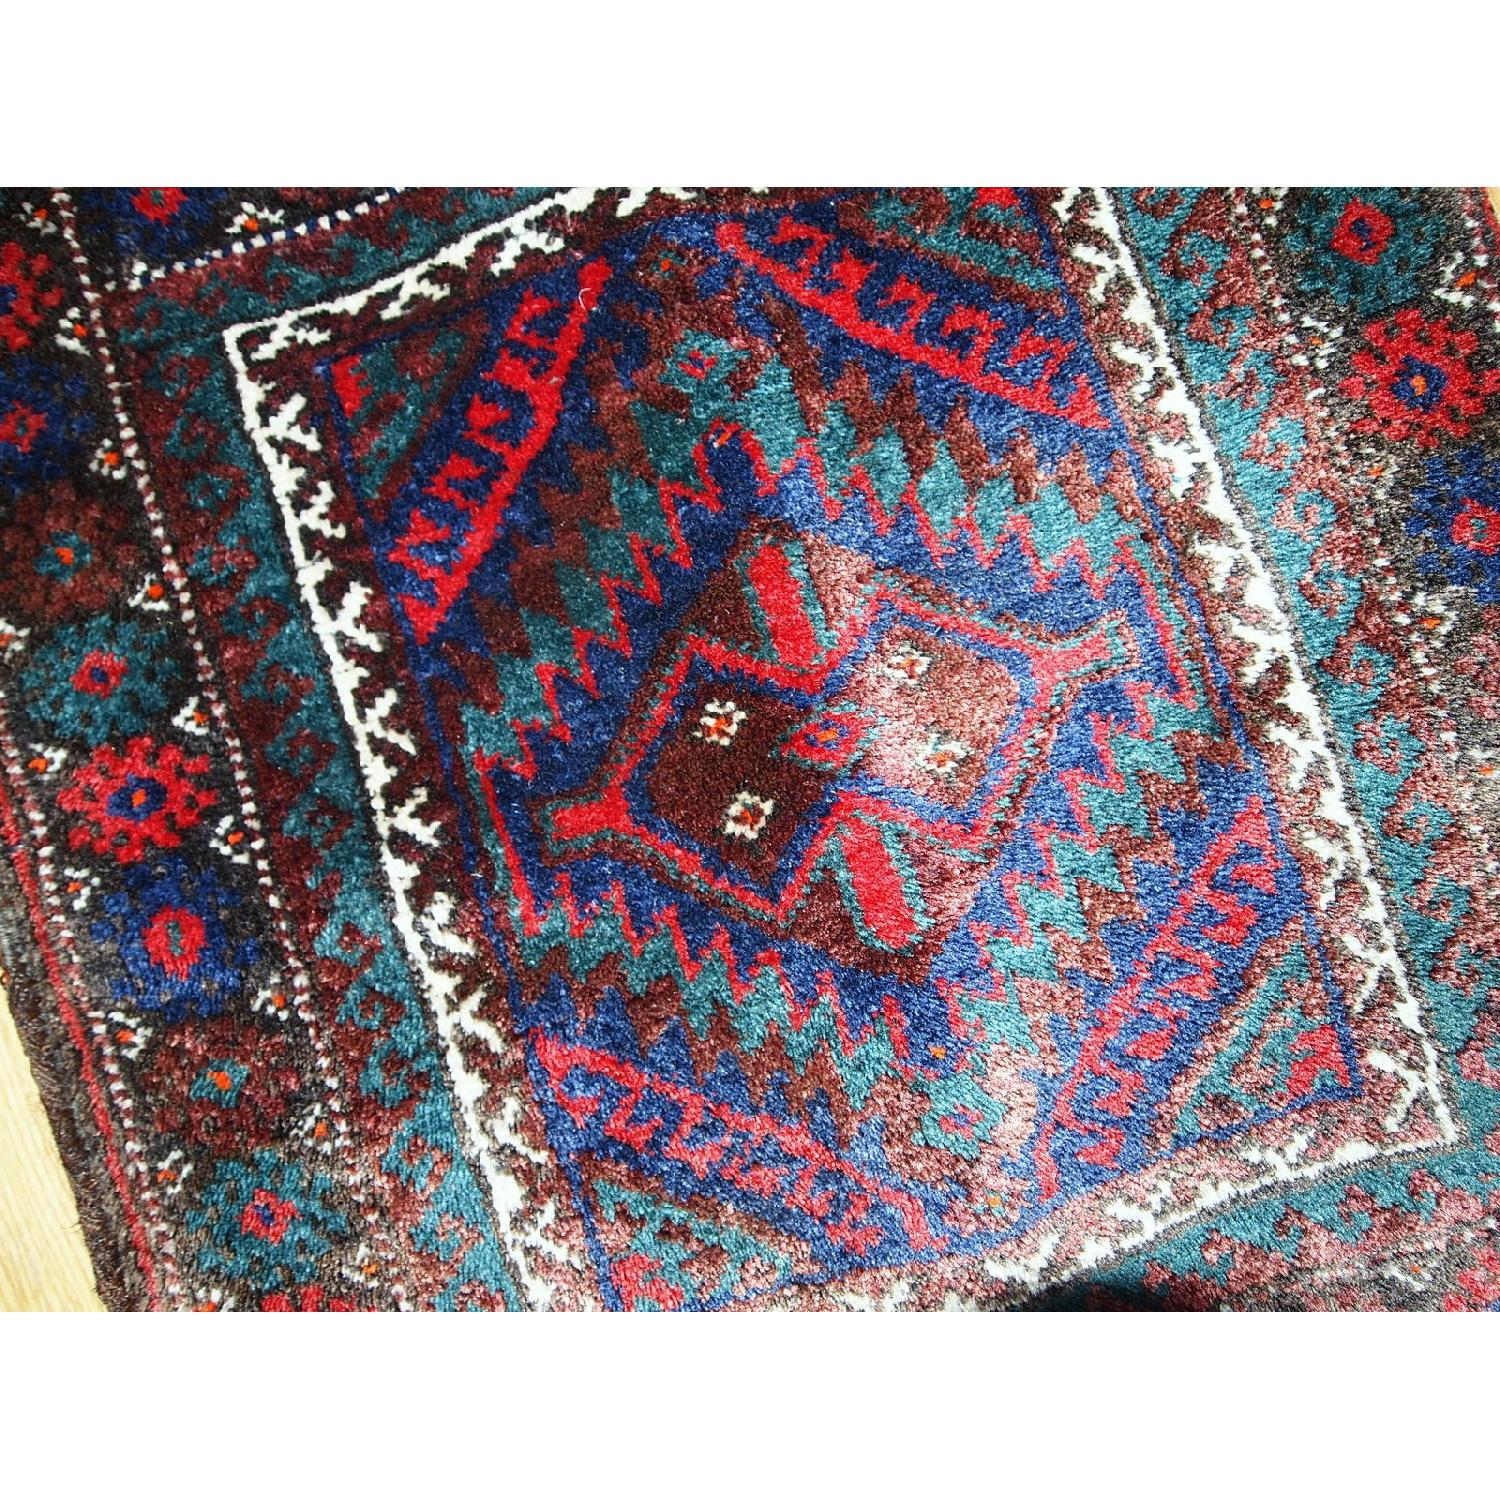 Antique Handmade Persian Kurdish Salt Bag Rug - image-12